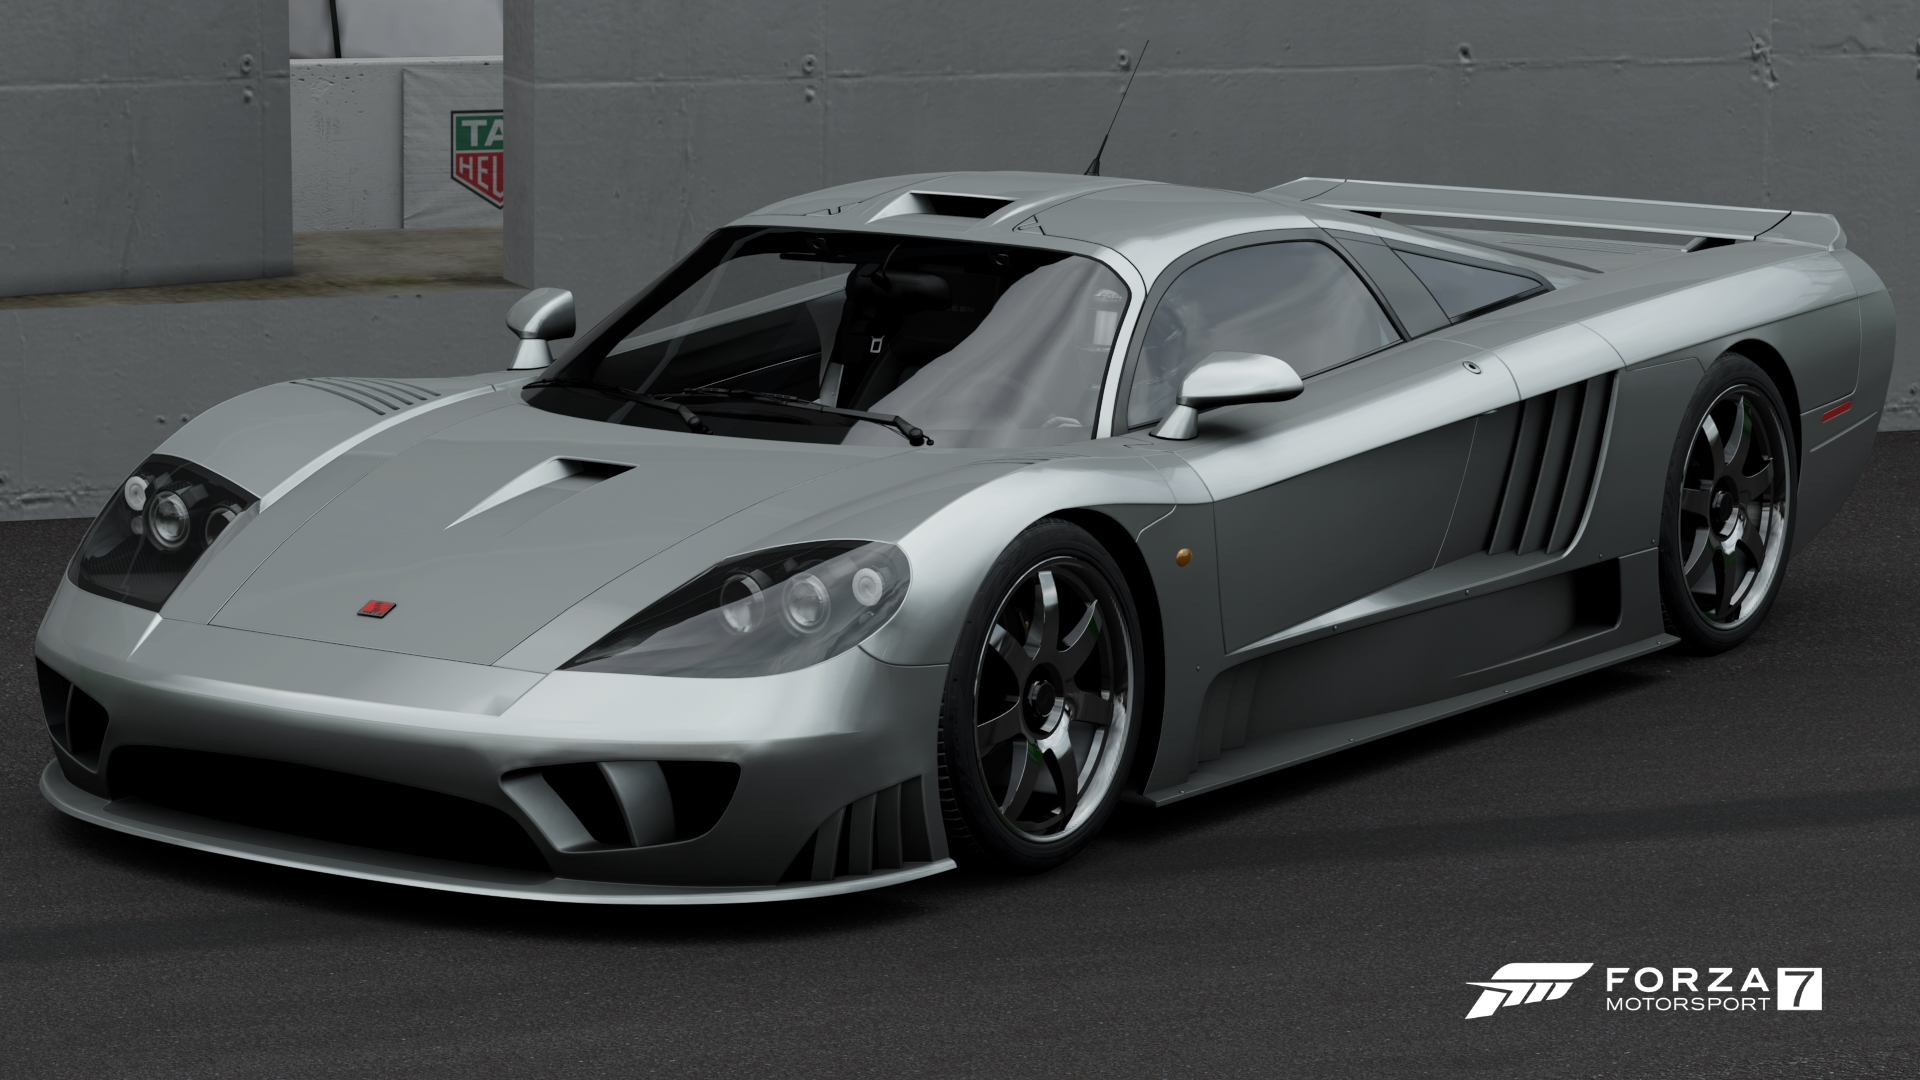 2004 Saleen S7 | Forza Motorsport Wiki | FANDOM powered by Wikia